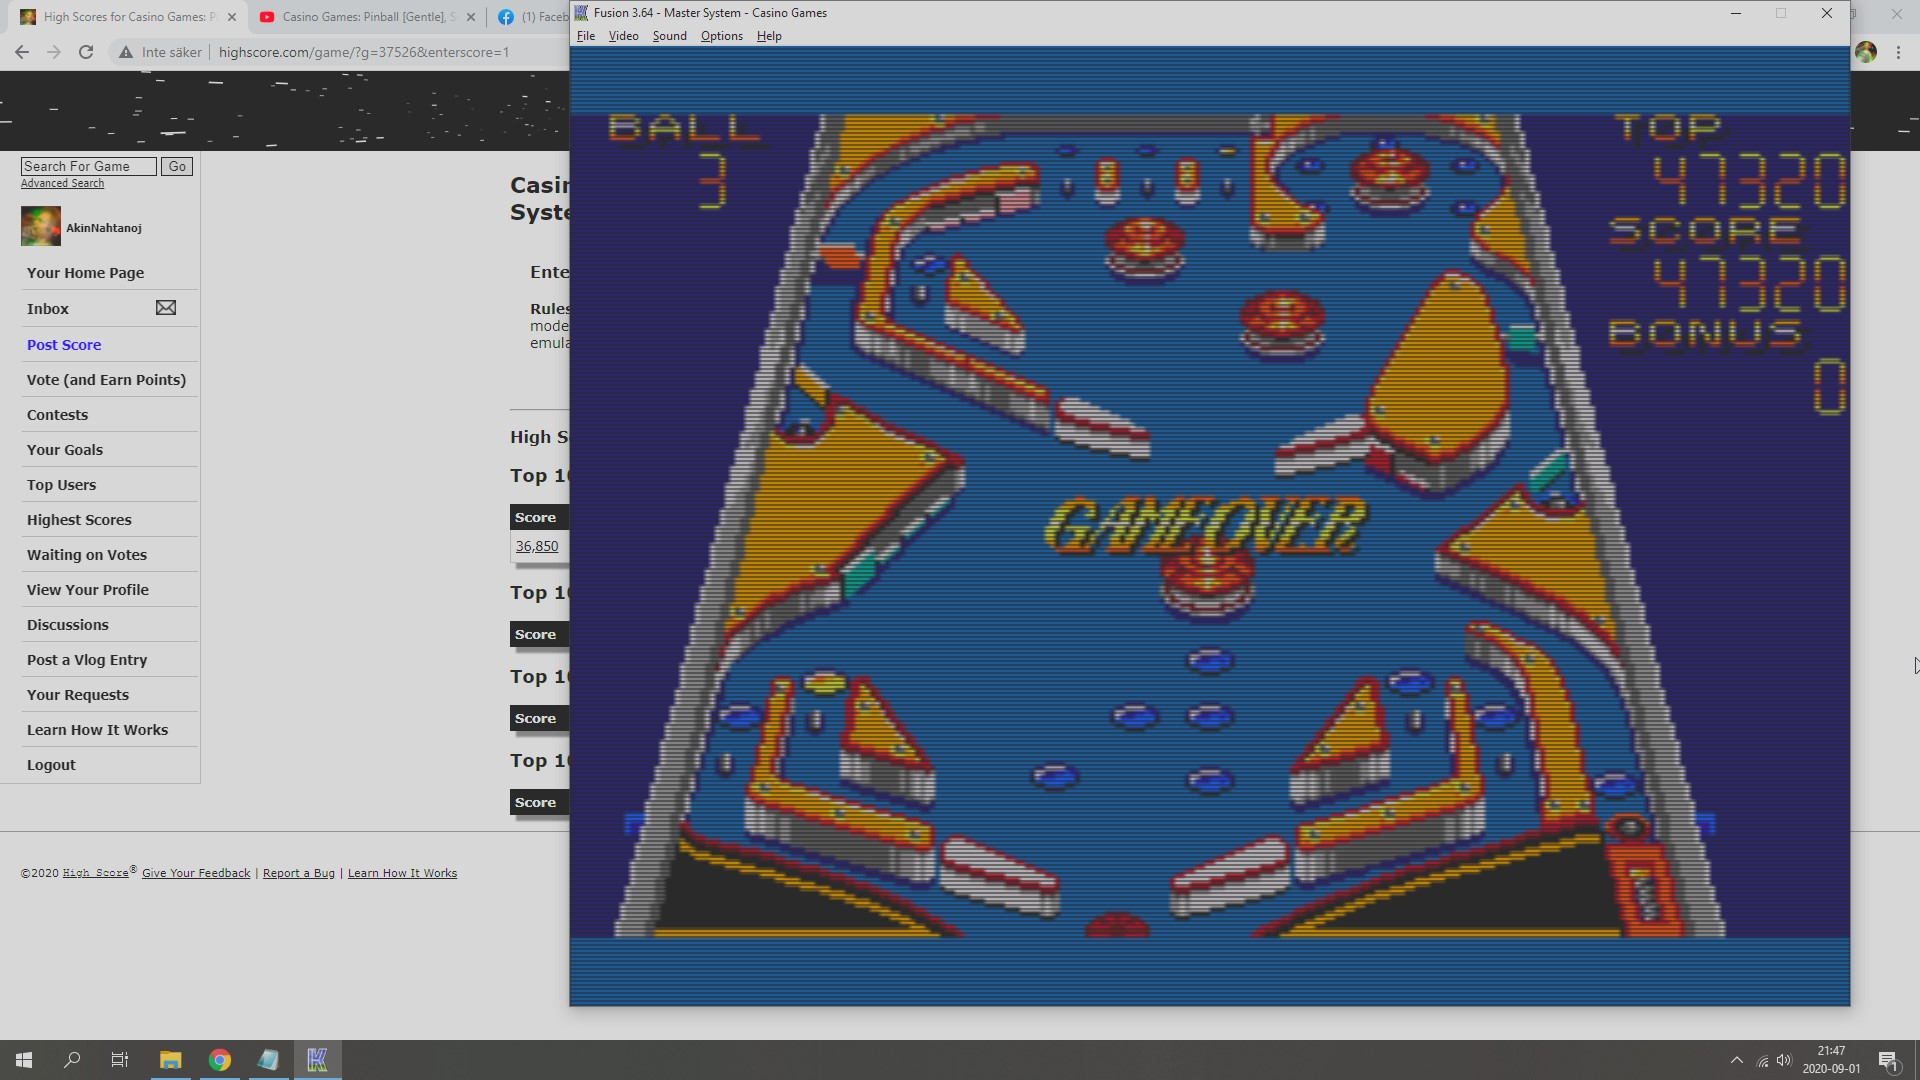 Casino Games: Pinball [Middle] 47,320 points